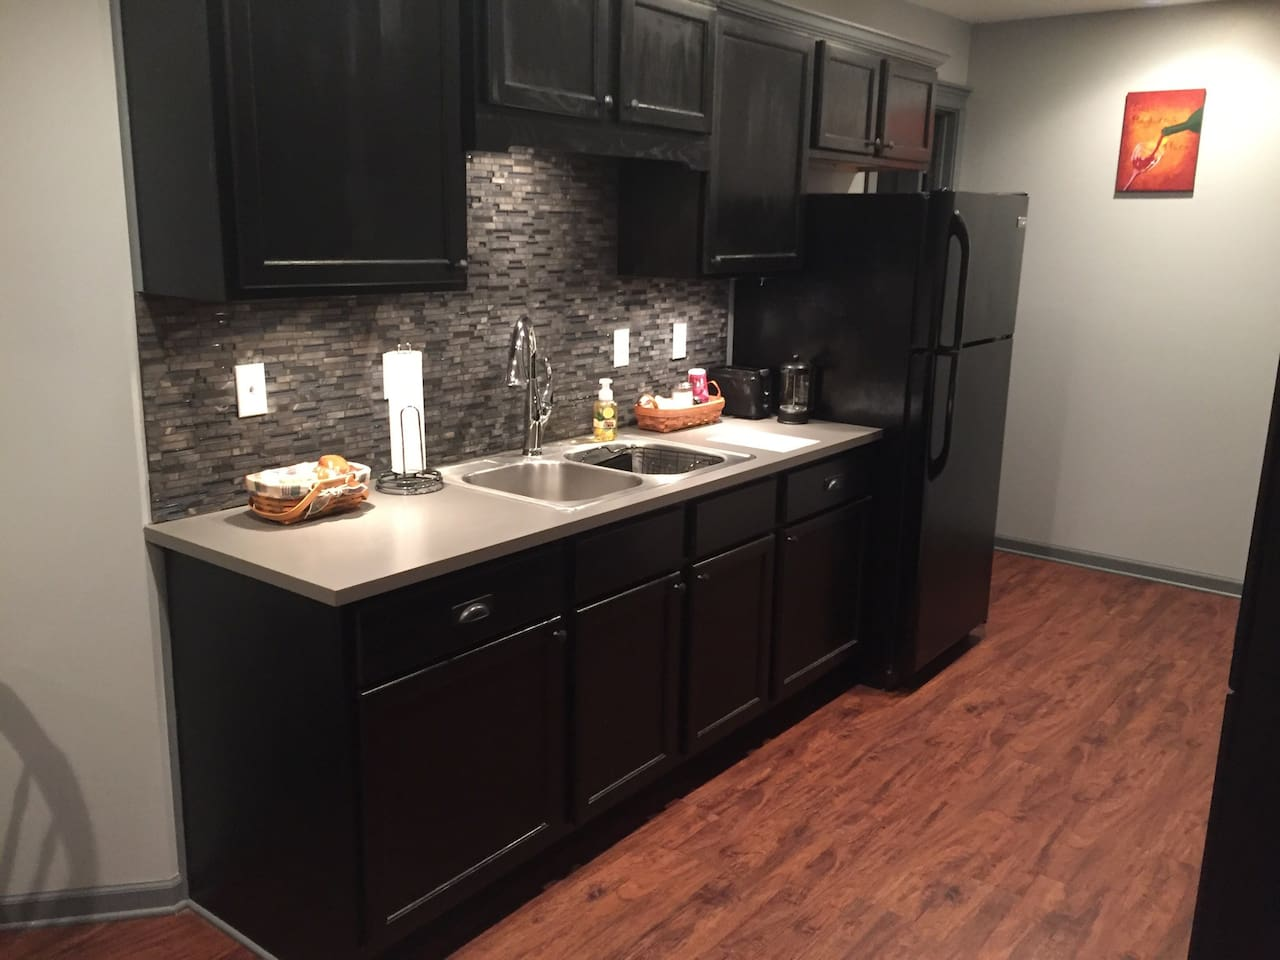 saint rayburn u0027s place apartments for rent in rensselaer indiana